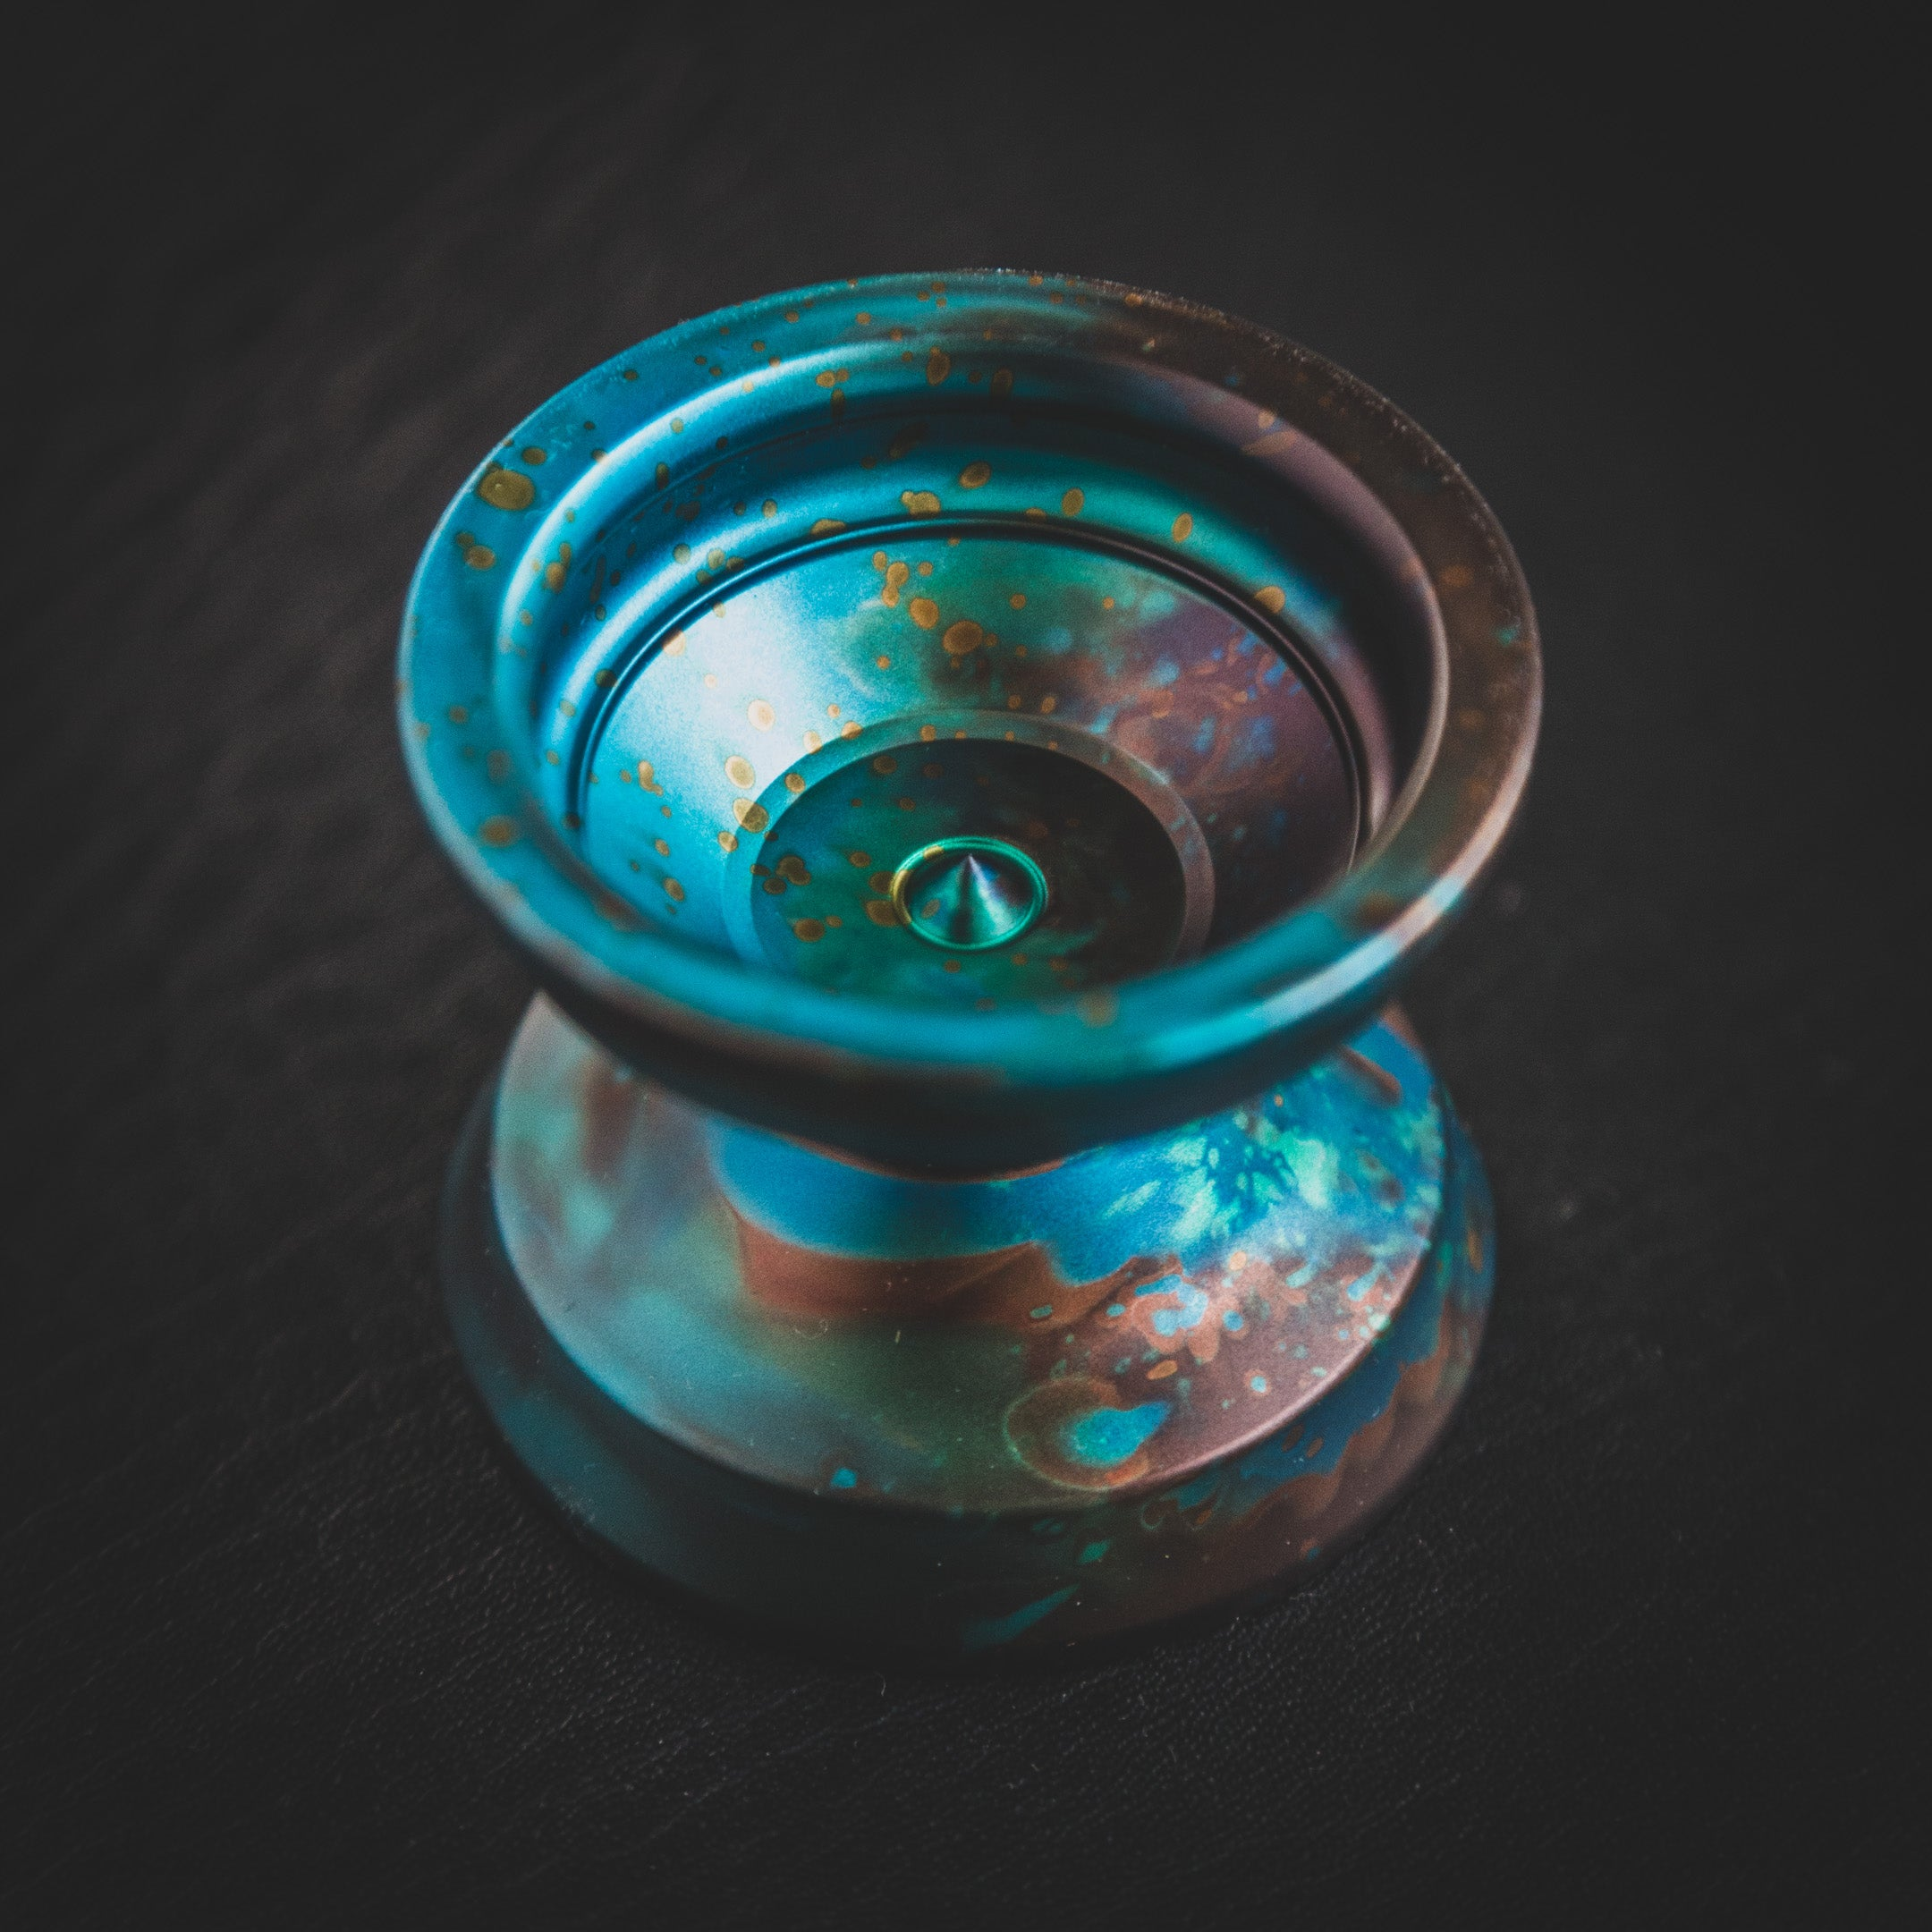 Swamp Monster Yoyo Copper Oxide Acid Splash, front view